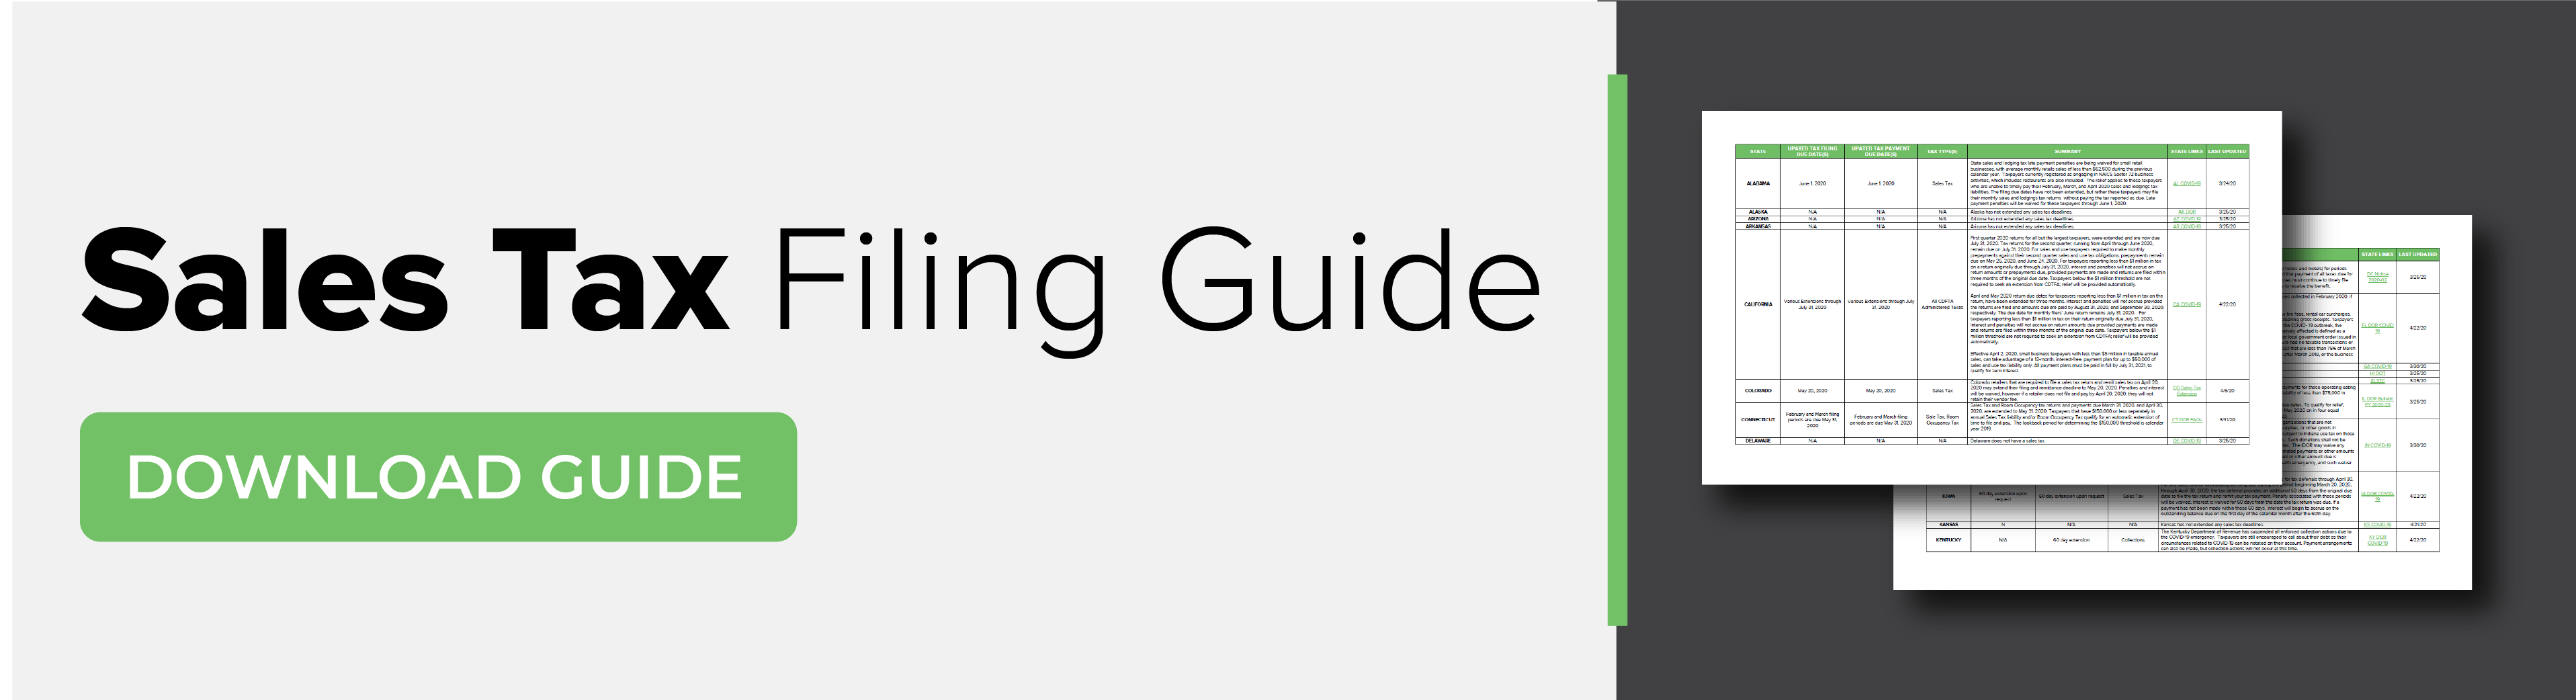 Sales Tax Filing Guide Download Guide